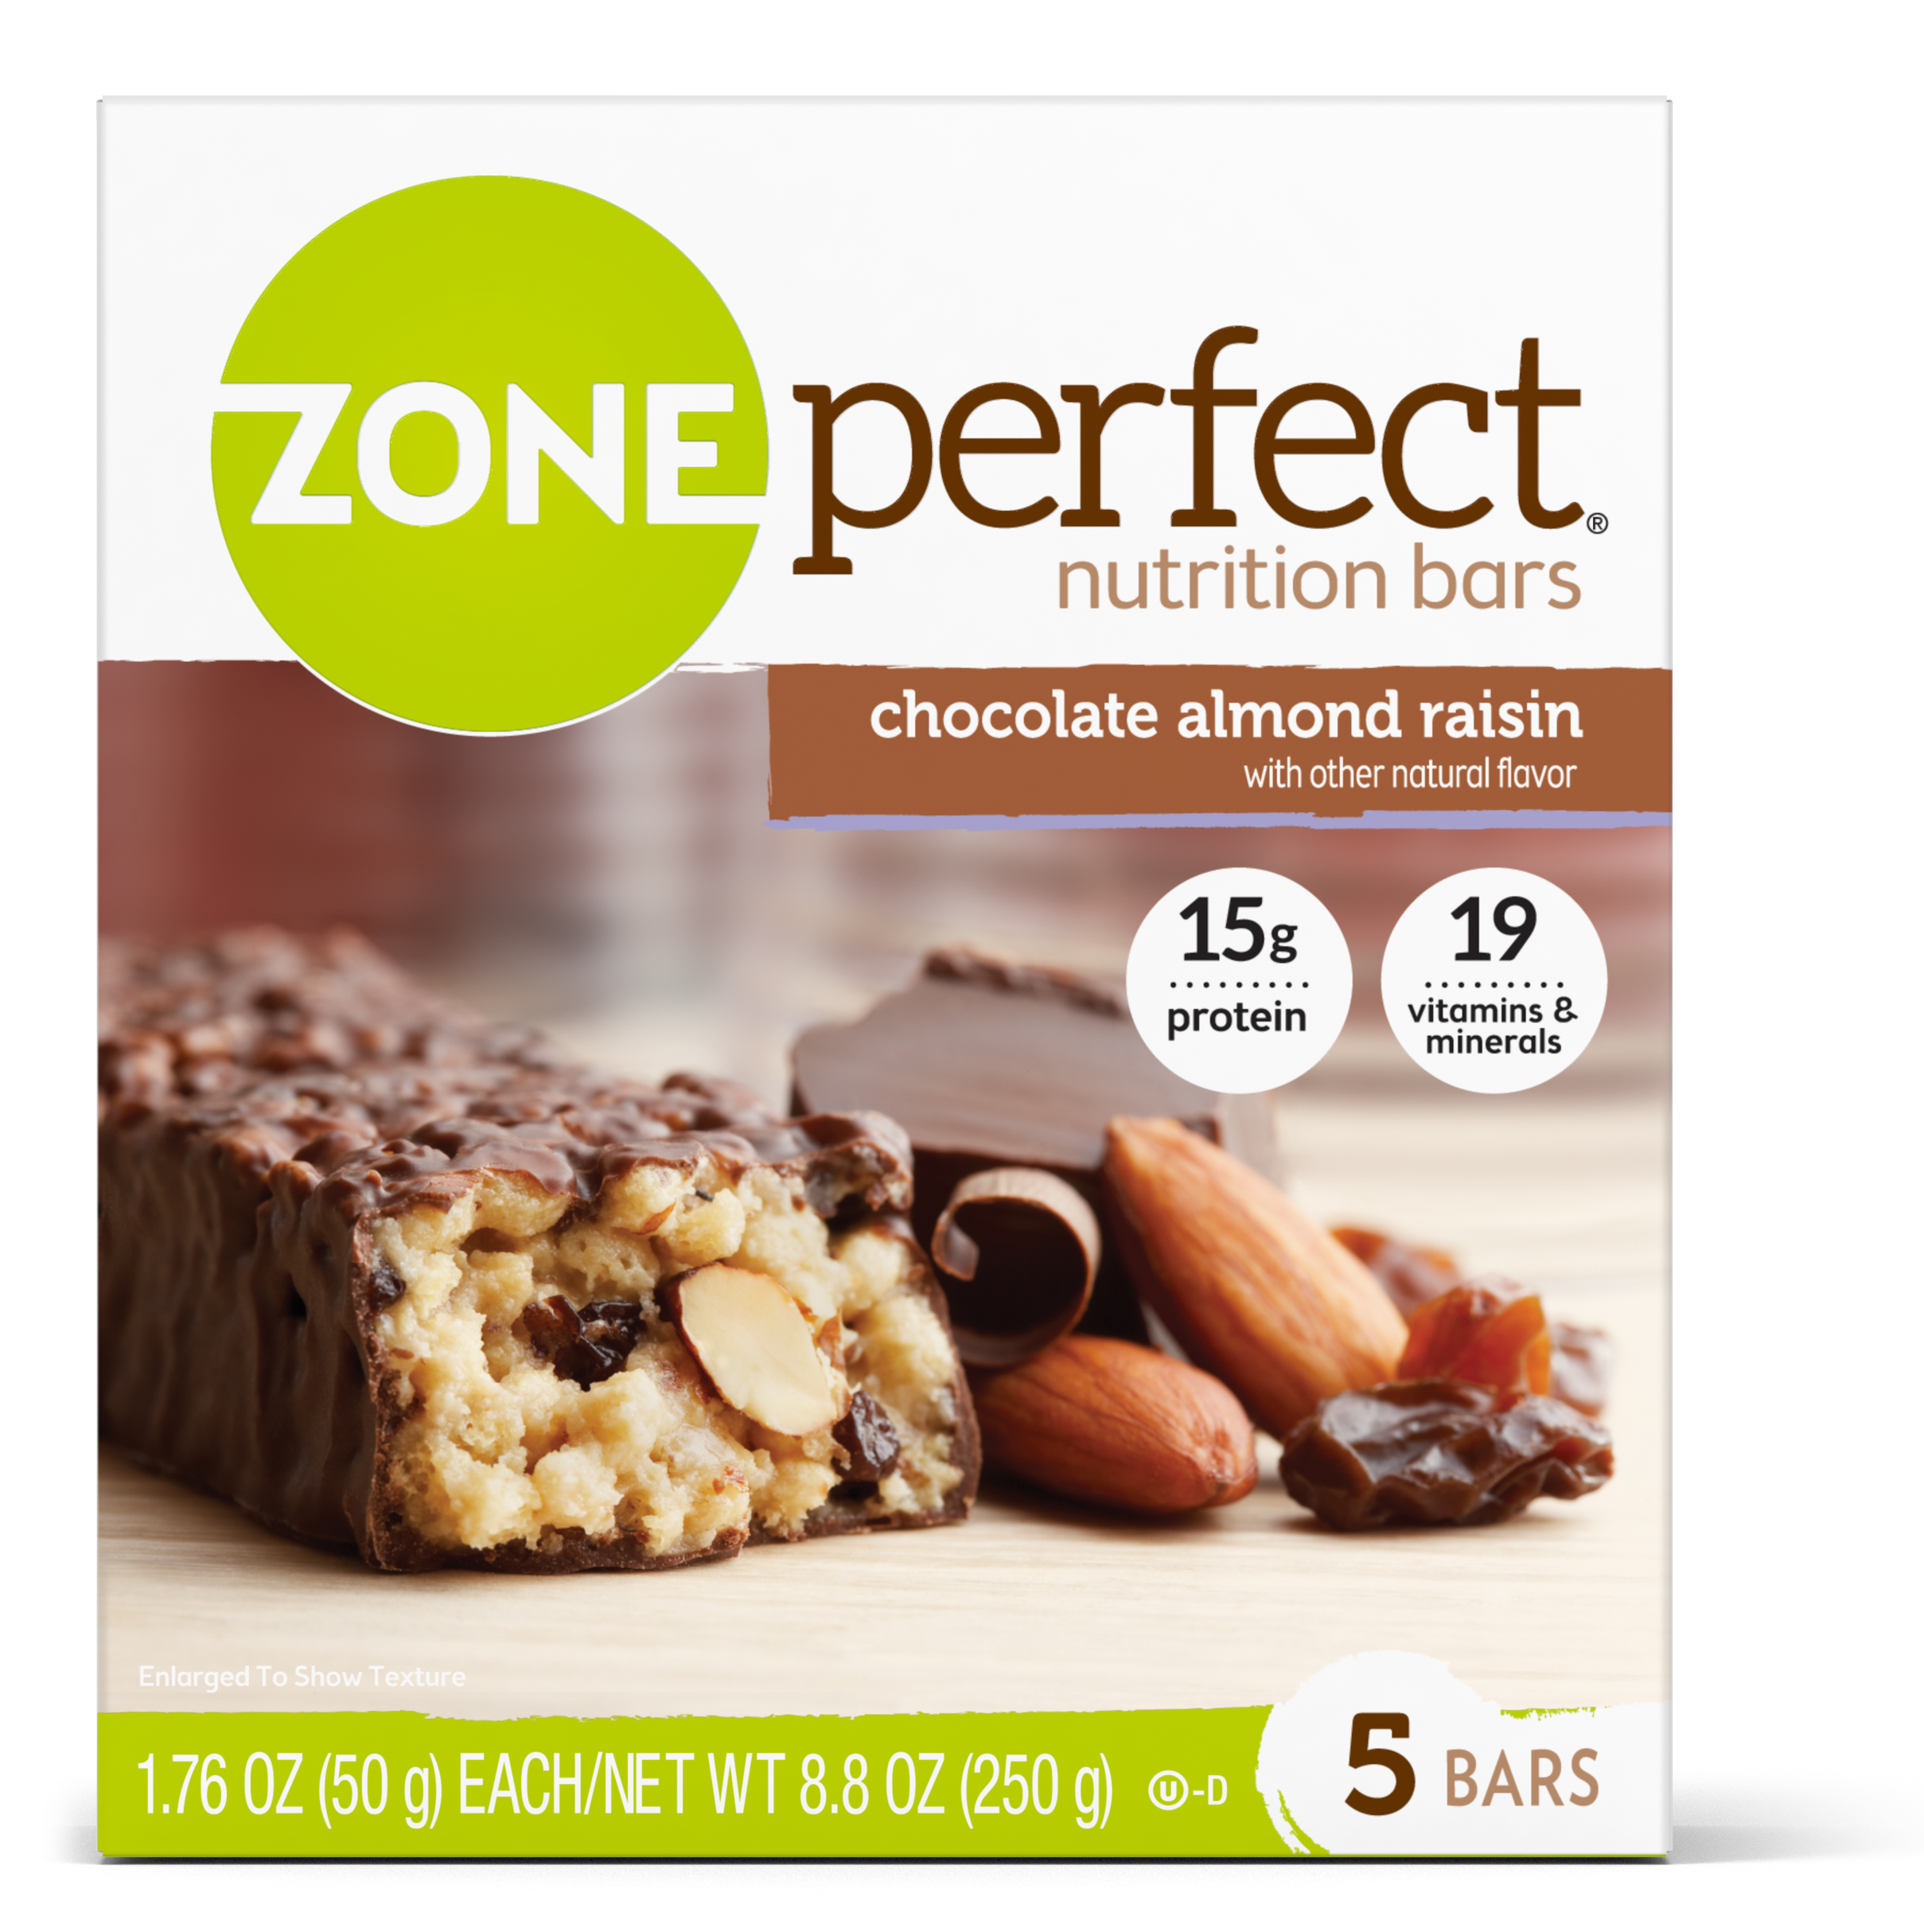 ZonePerfect Nutrition Bar, Chocolate Almond Raisin, 15g Protein, 5 Ct